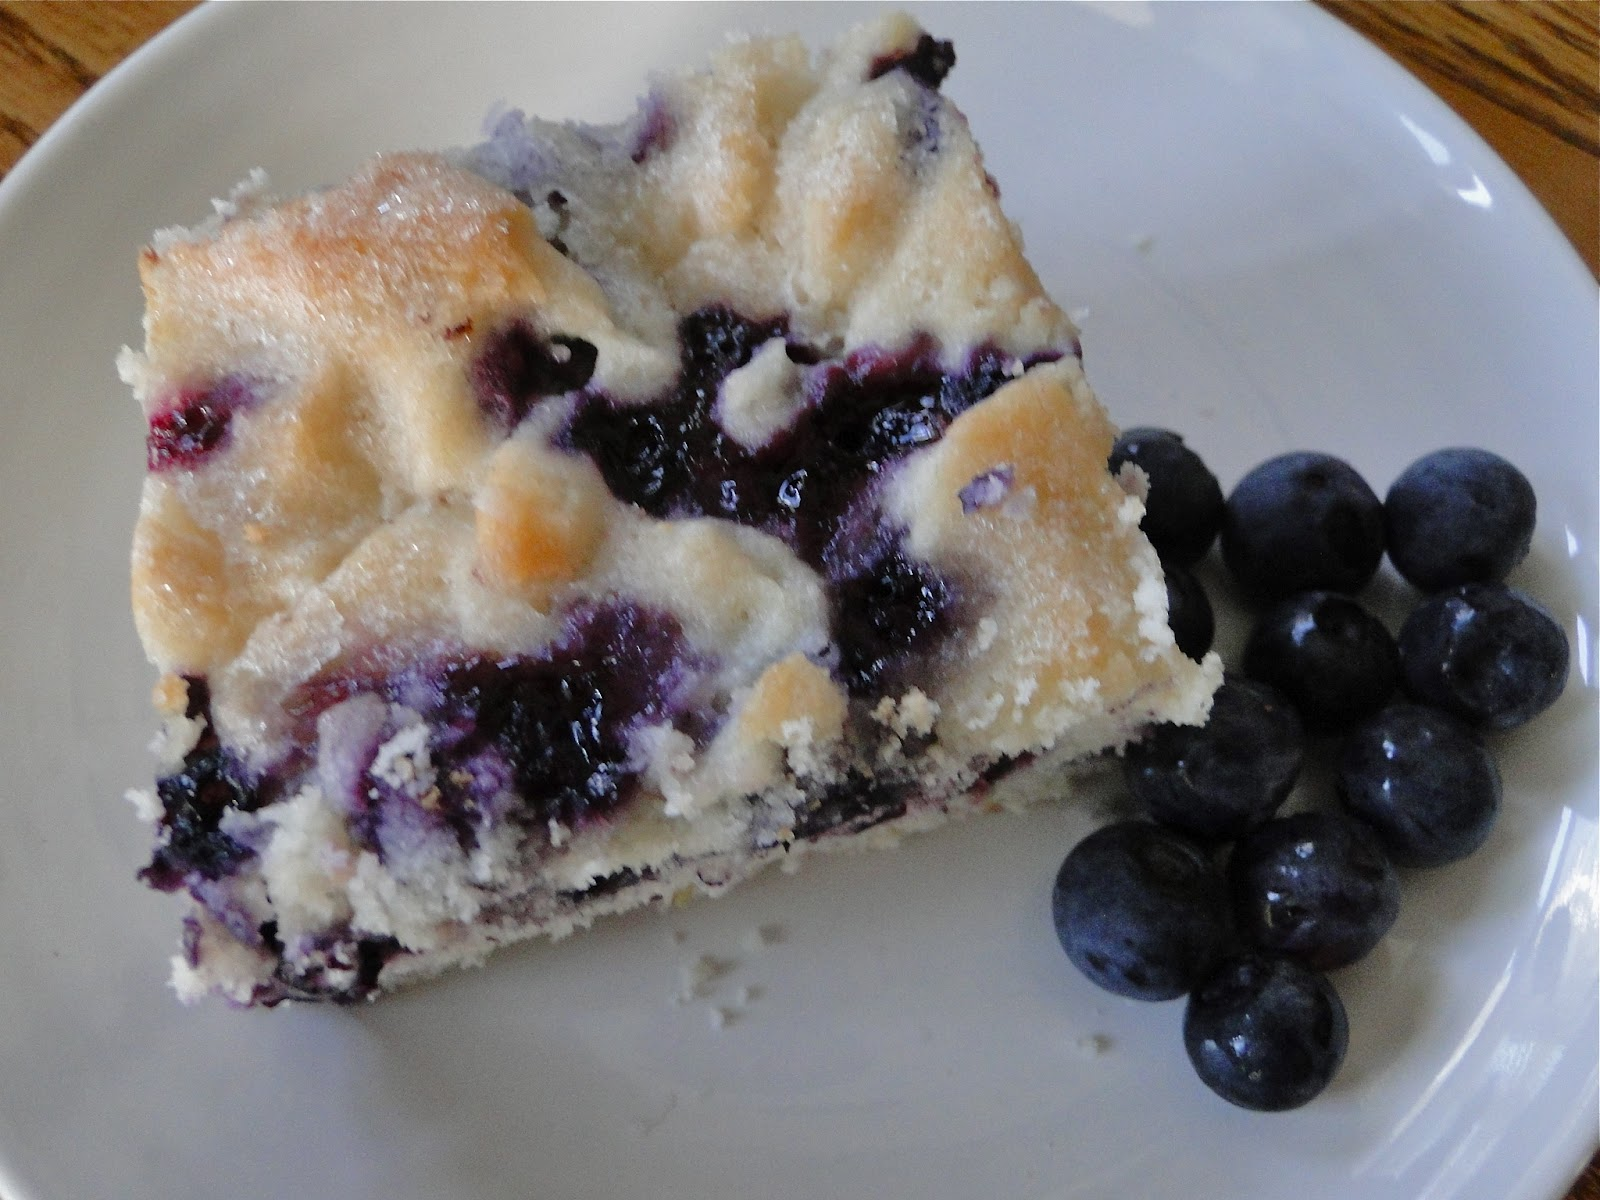 It's healthy because it's stuffed full of blueberries, am I right??!